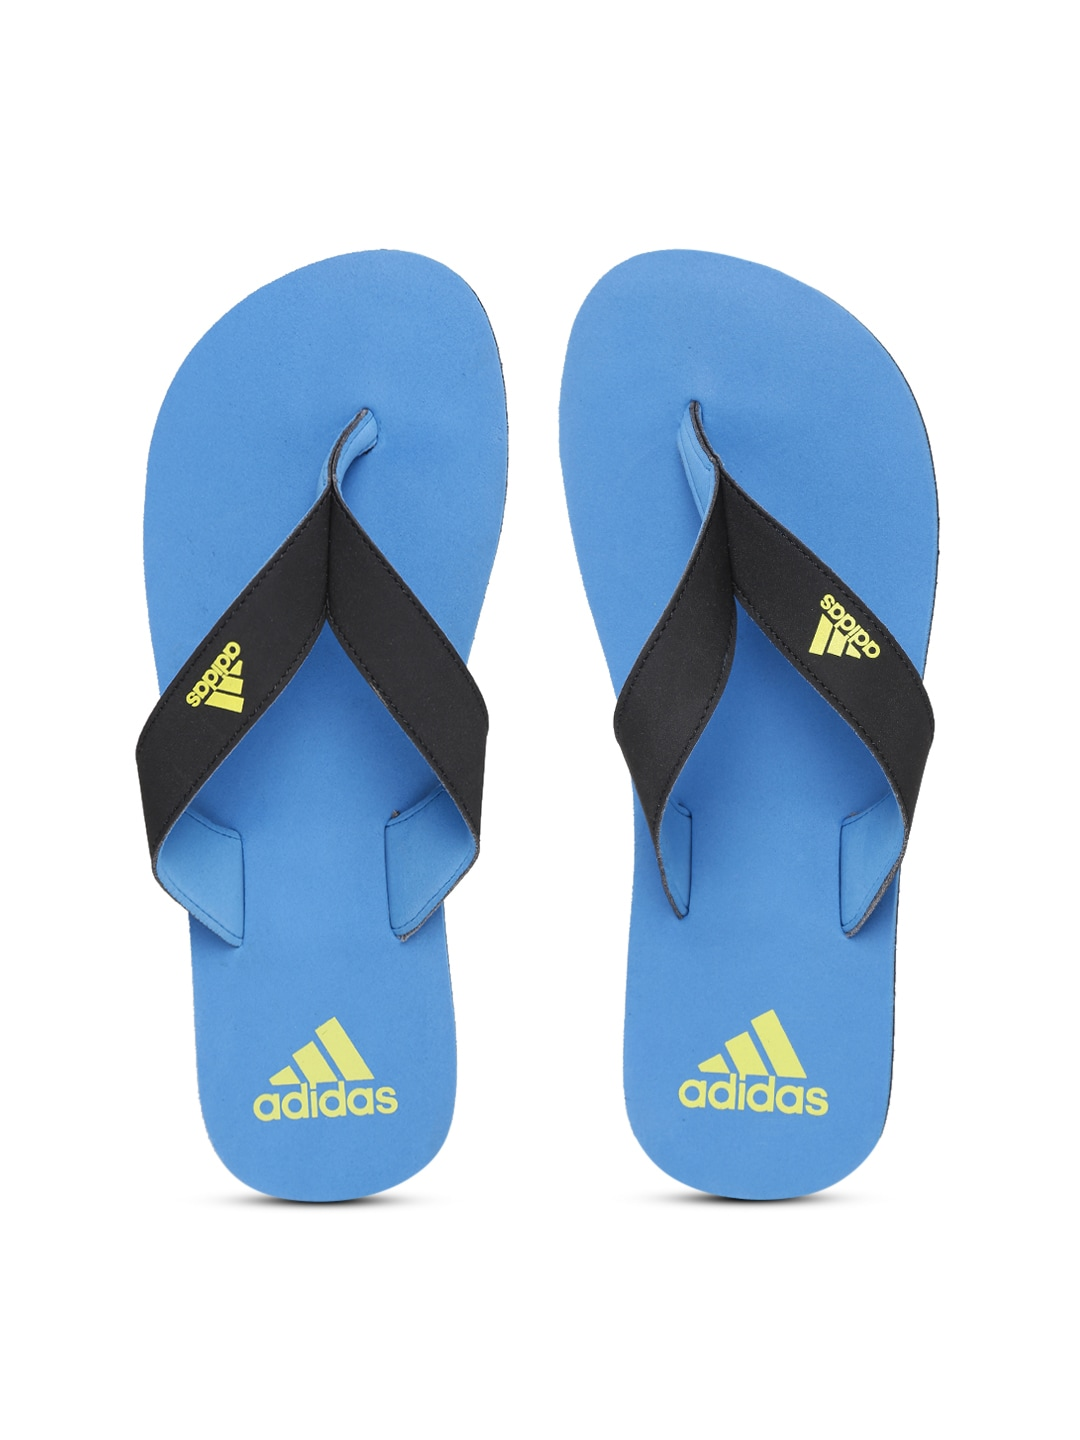 e8b0393f03d Adidas Men Flip Flops Belts - Buy Adidas Men Flip Flops Belts online in  India